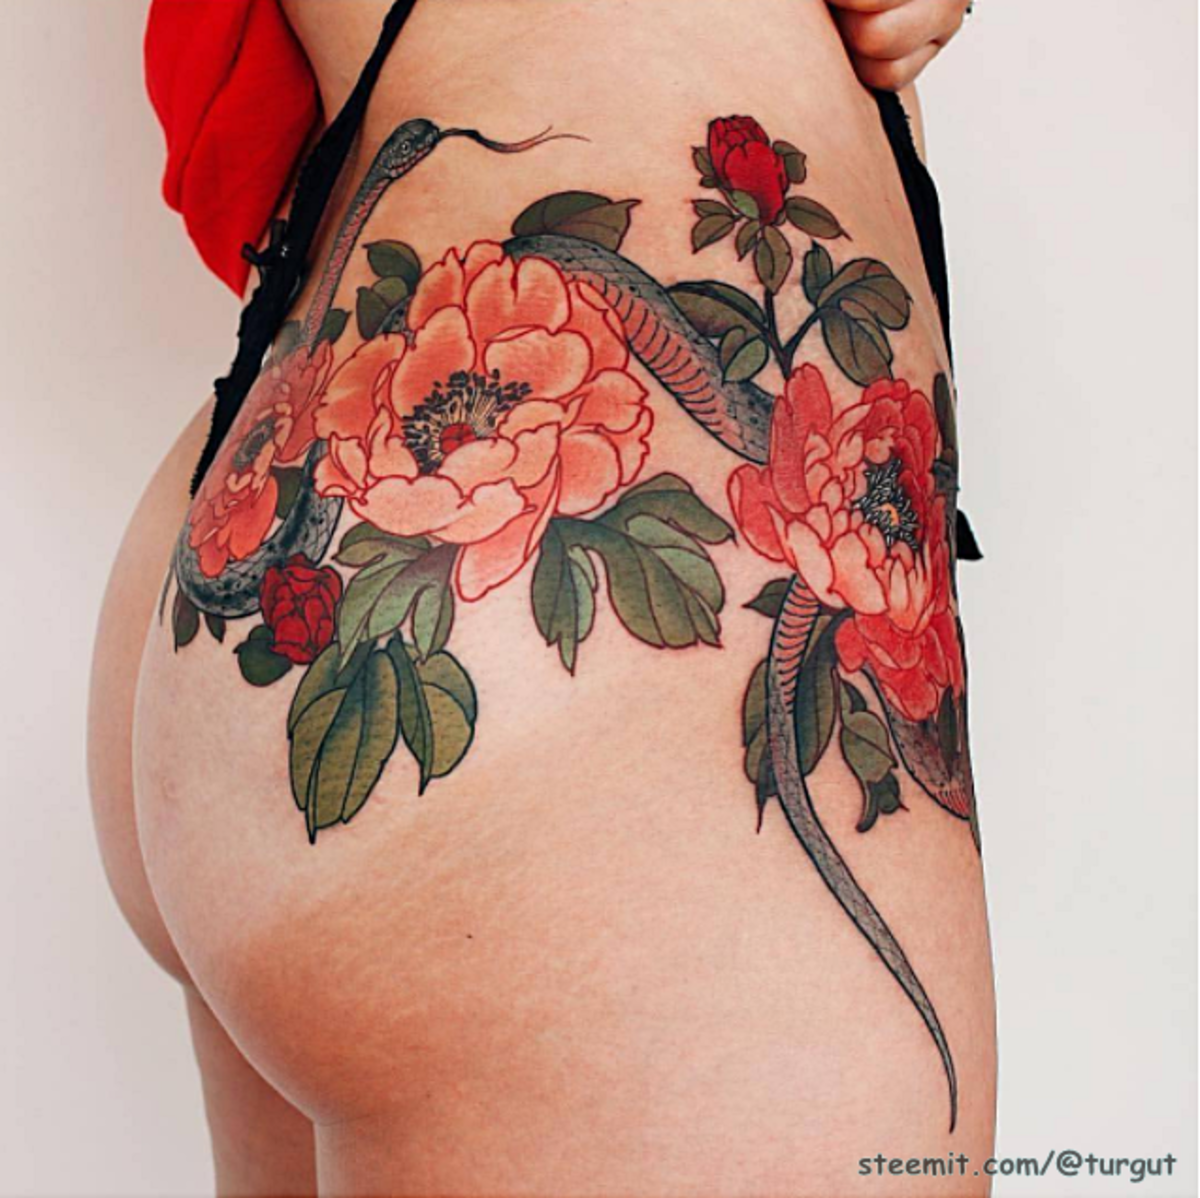 18 Best And Worst Butt Tattoos On Women Tattoo Ideas Artists And